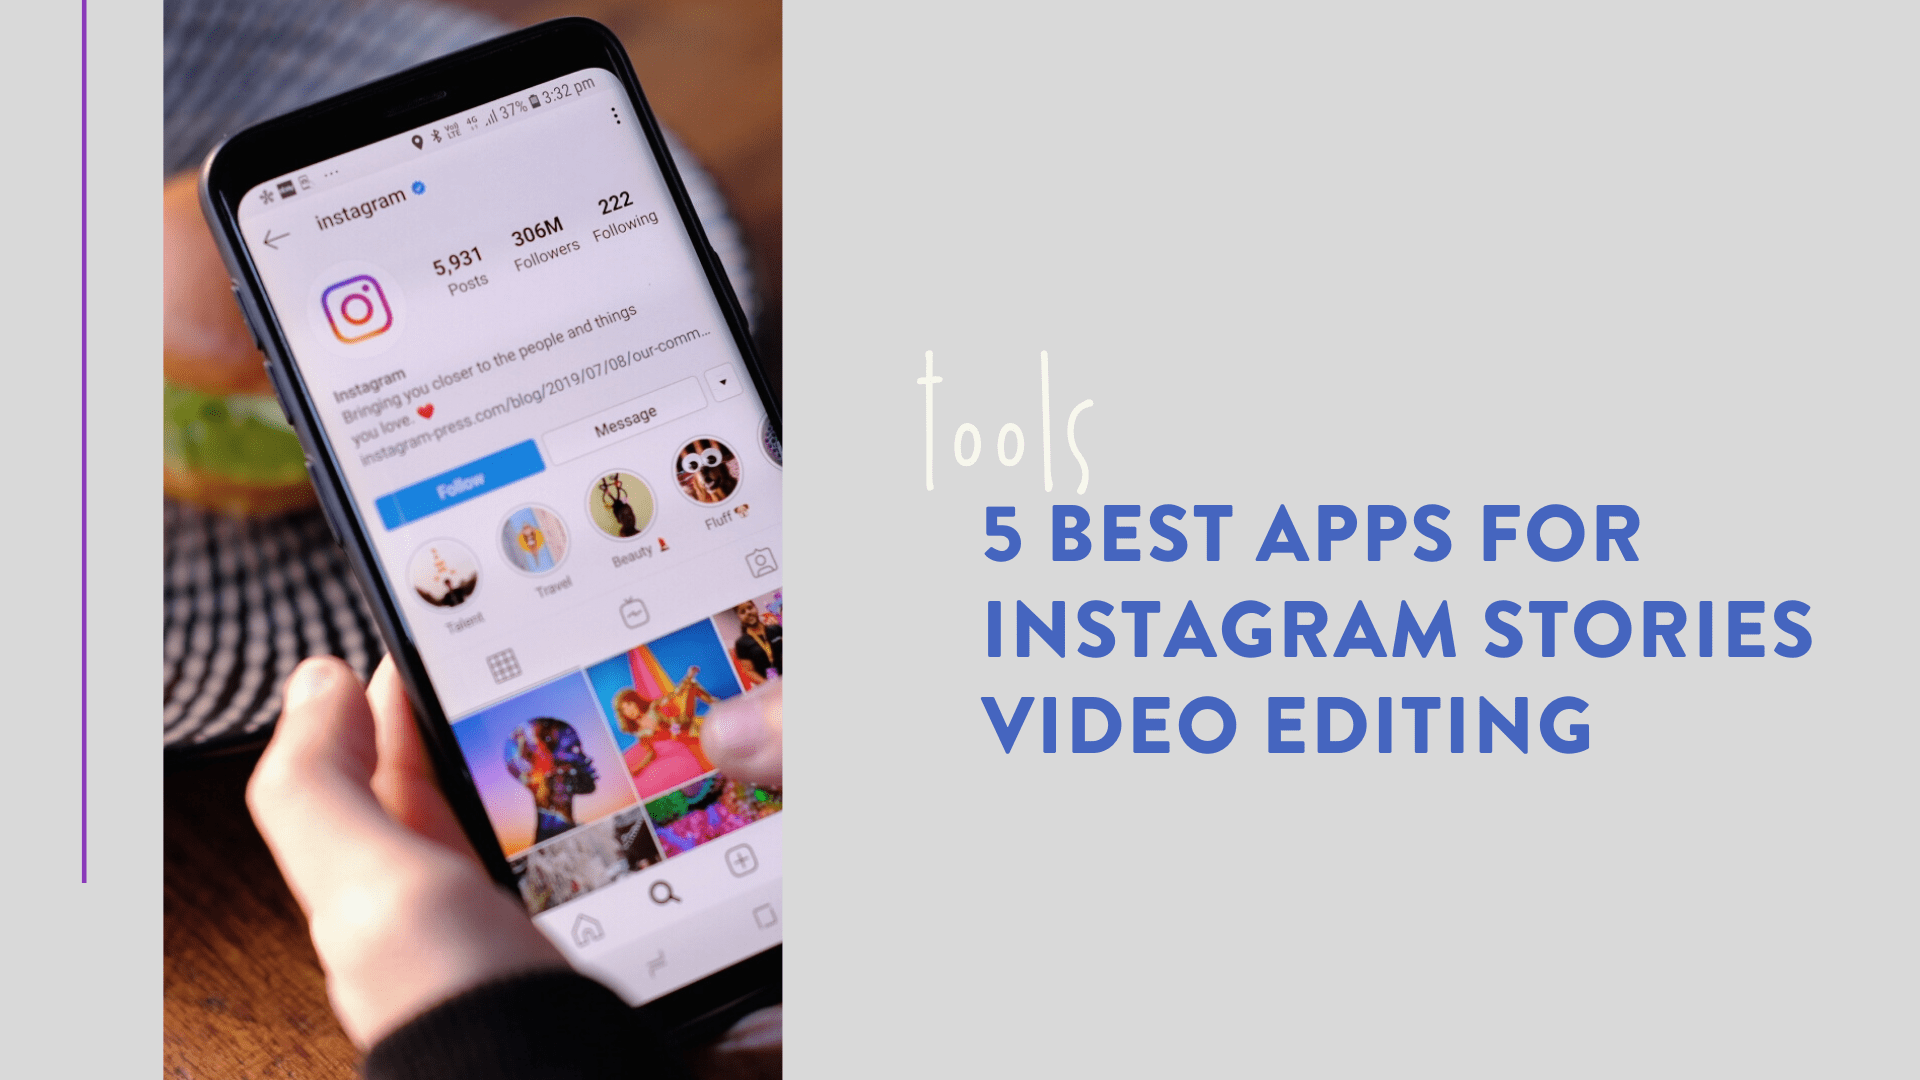 5 Best Apps for Instagram Stories Video Editing